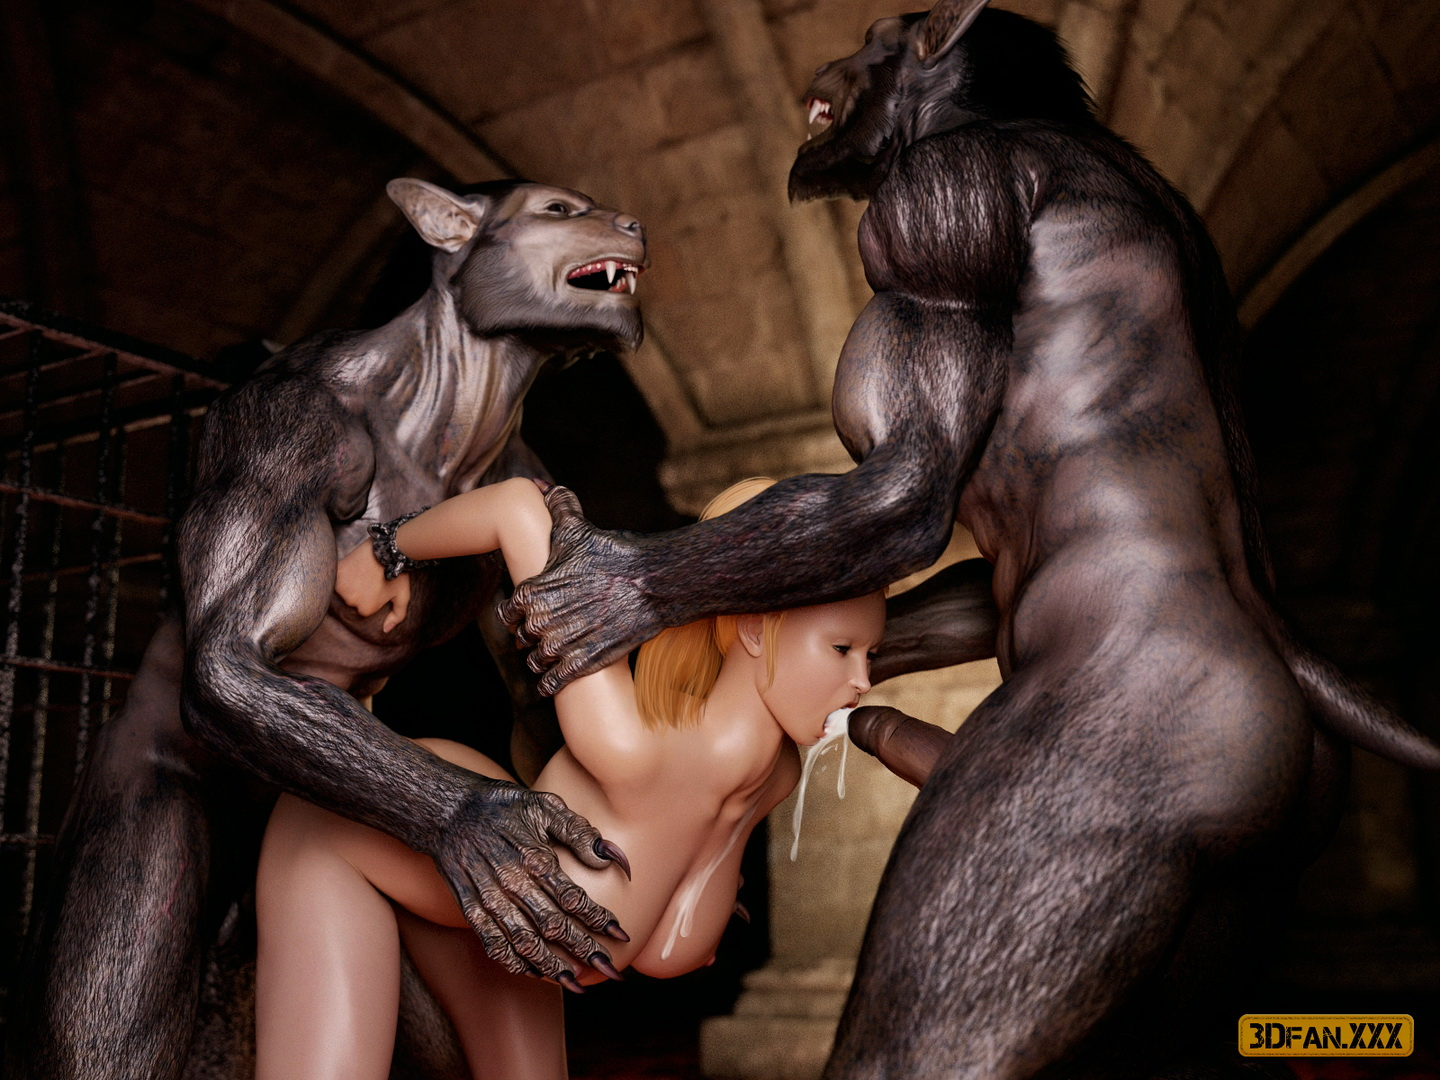 3d monster fuck girl download nude scenes